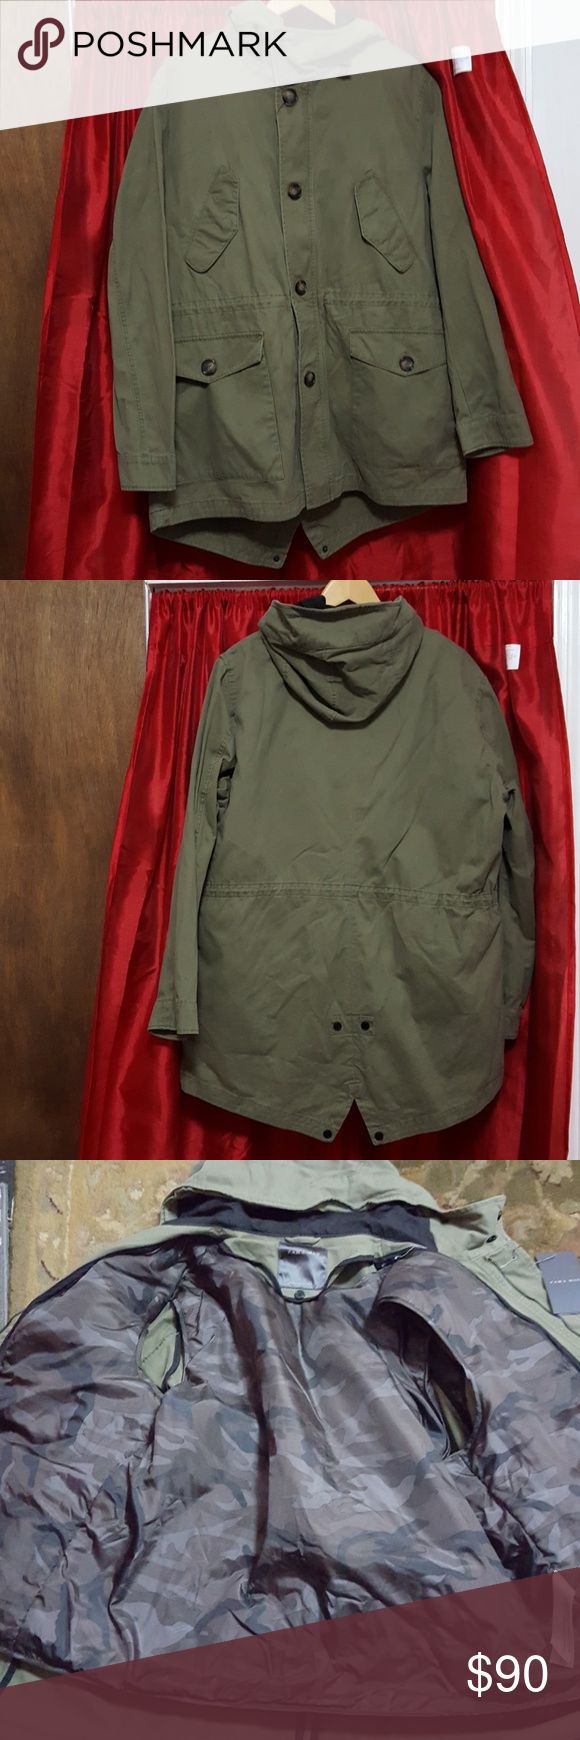 ZARA MAN HOODED pocketed fully lined PARKA ZARA MAN army green with zip out lining that can be worn as a vest. HOODED, pocketed PARKA zip or button up. Zara Man Jackets & Coats Military & Field